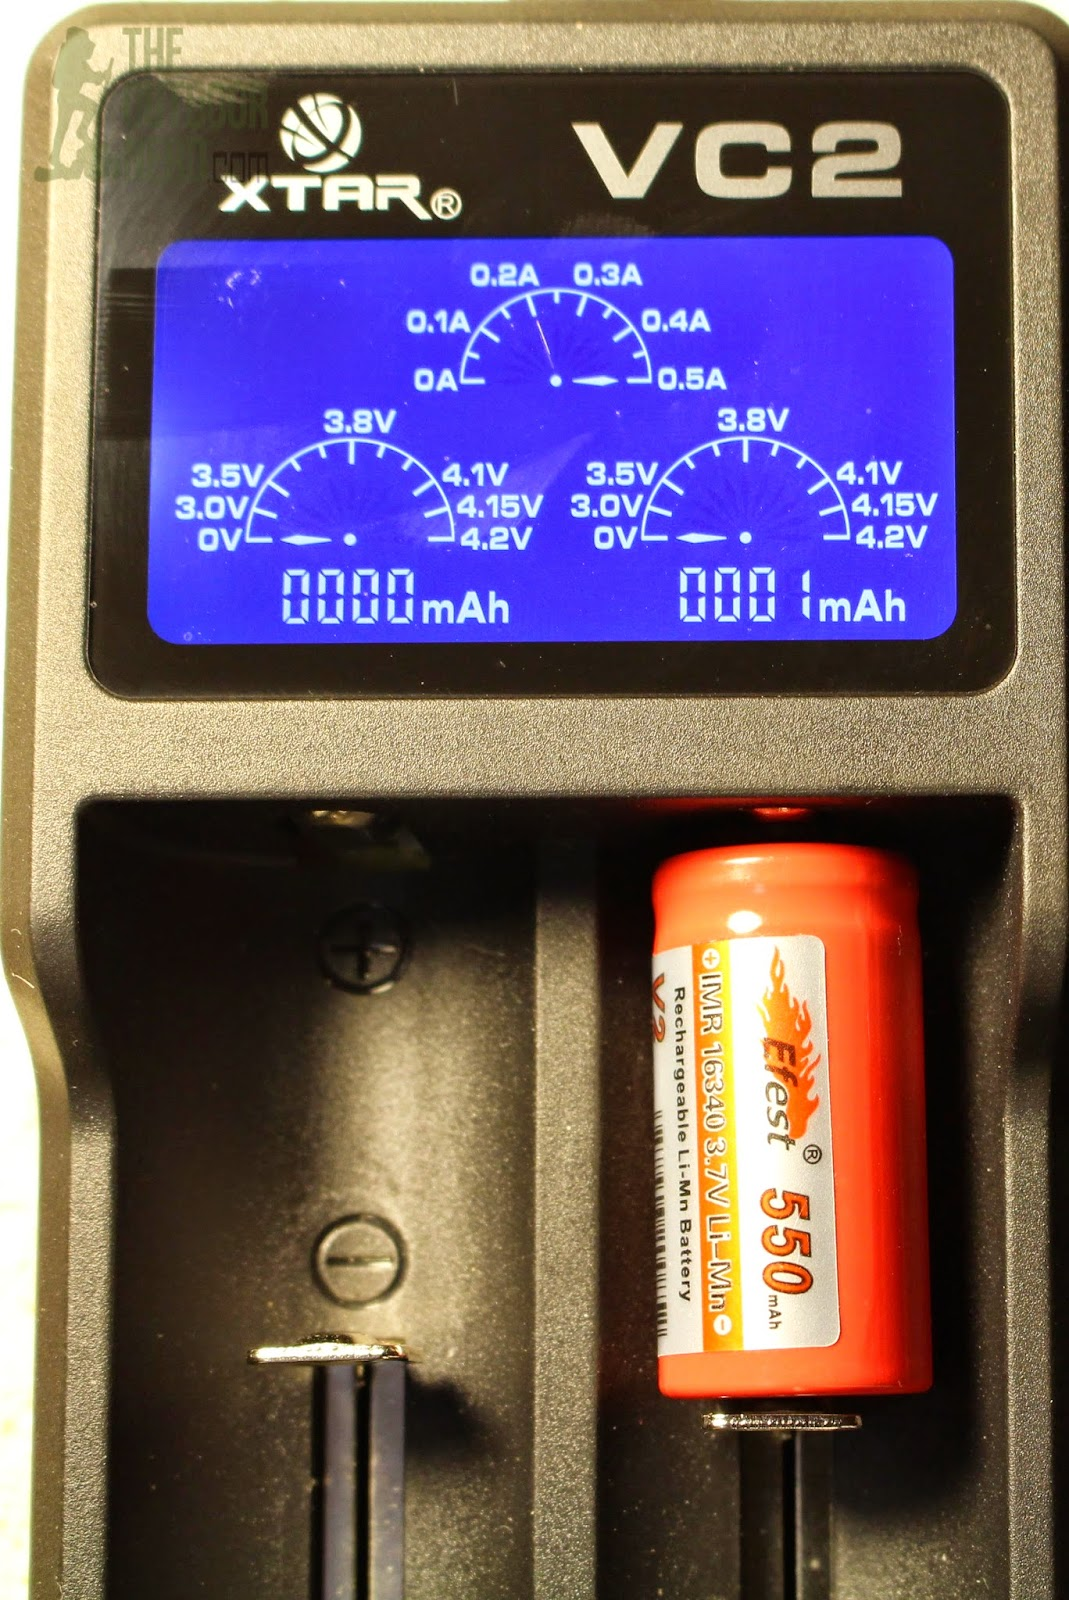 XTAR VC2 USB Lithium-Ion Battery Charger: 0V Activation